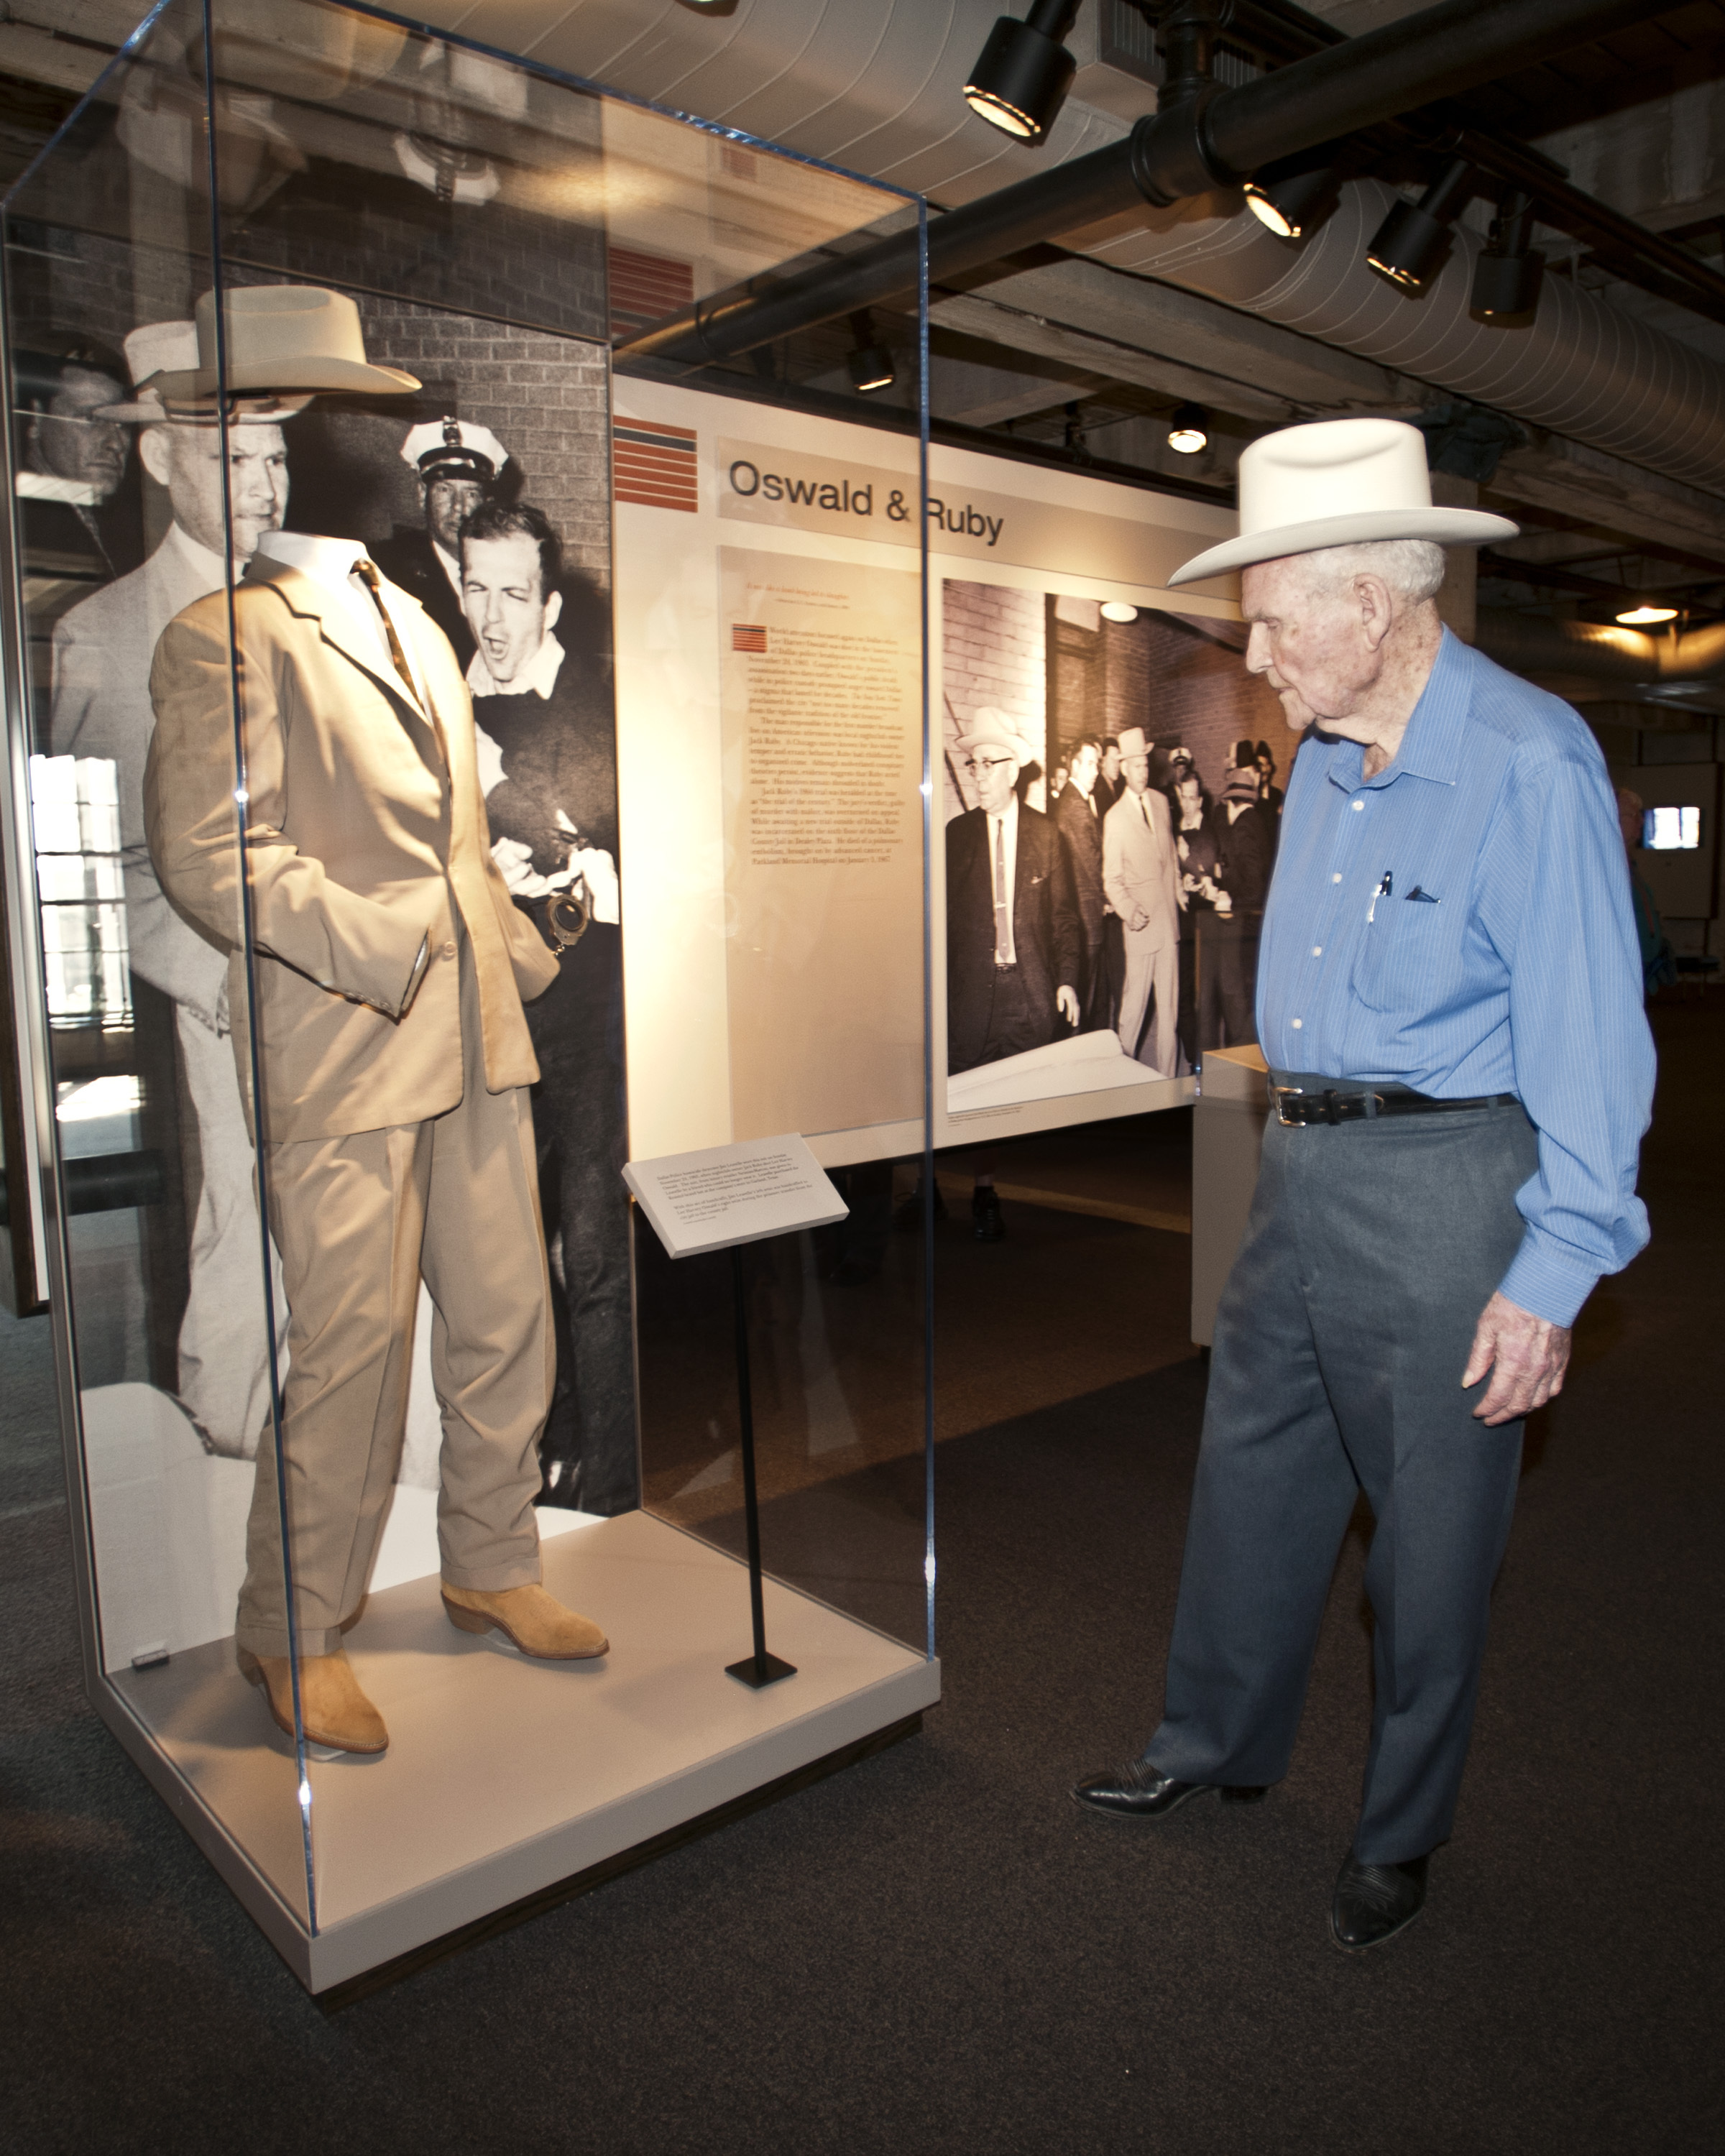 Nice The Sixth Floor Museum At Dealey Plaza Adds Iconic Artifacts, Enhances Core  Exhibit In Preparation For 50th Anniversary Of President John F. Kennedyu0027s  ...